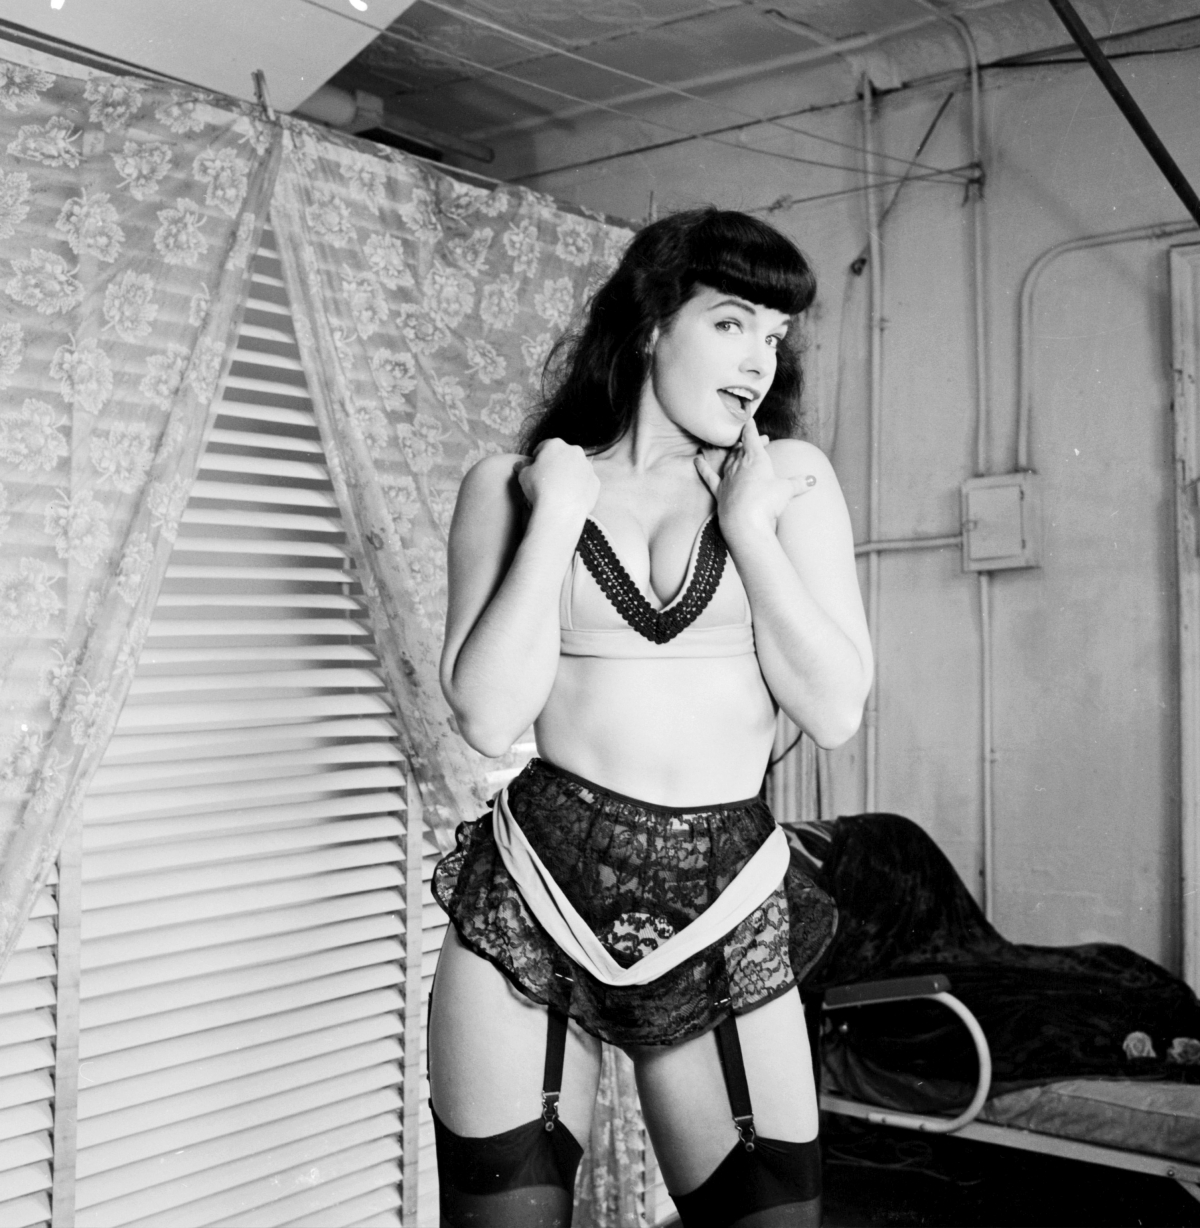 http://theselvedgeyard.files.wordpress.com/2010/12/bettie-page-garters.jpg?w=1200